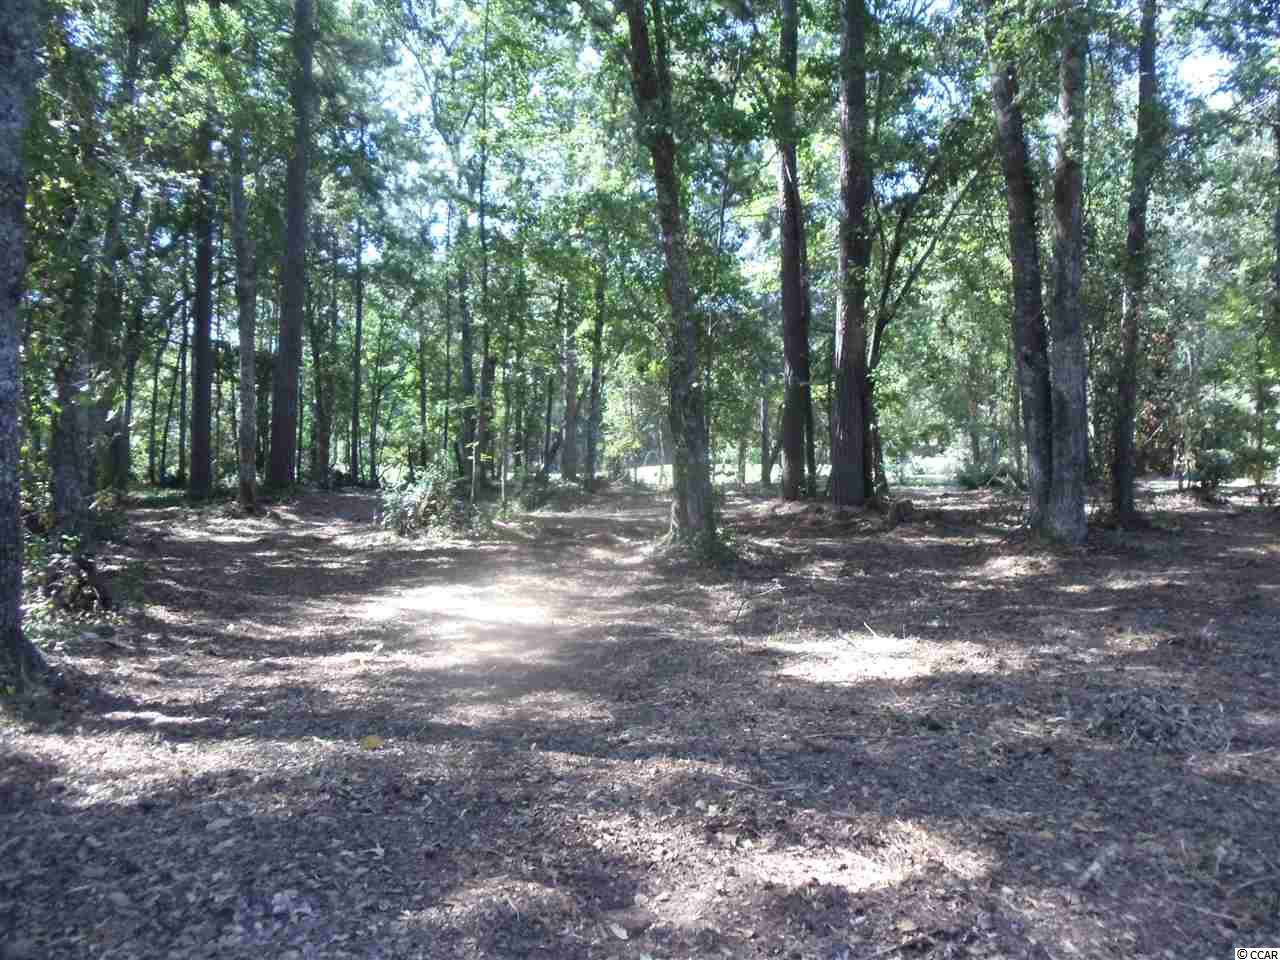 Lot 27 Georgetown Drive Lot 27 Georgetown Drive Pawleys Island, South Carolina 29585 United States